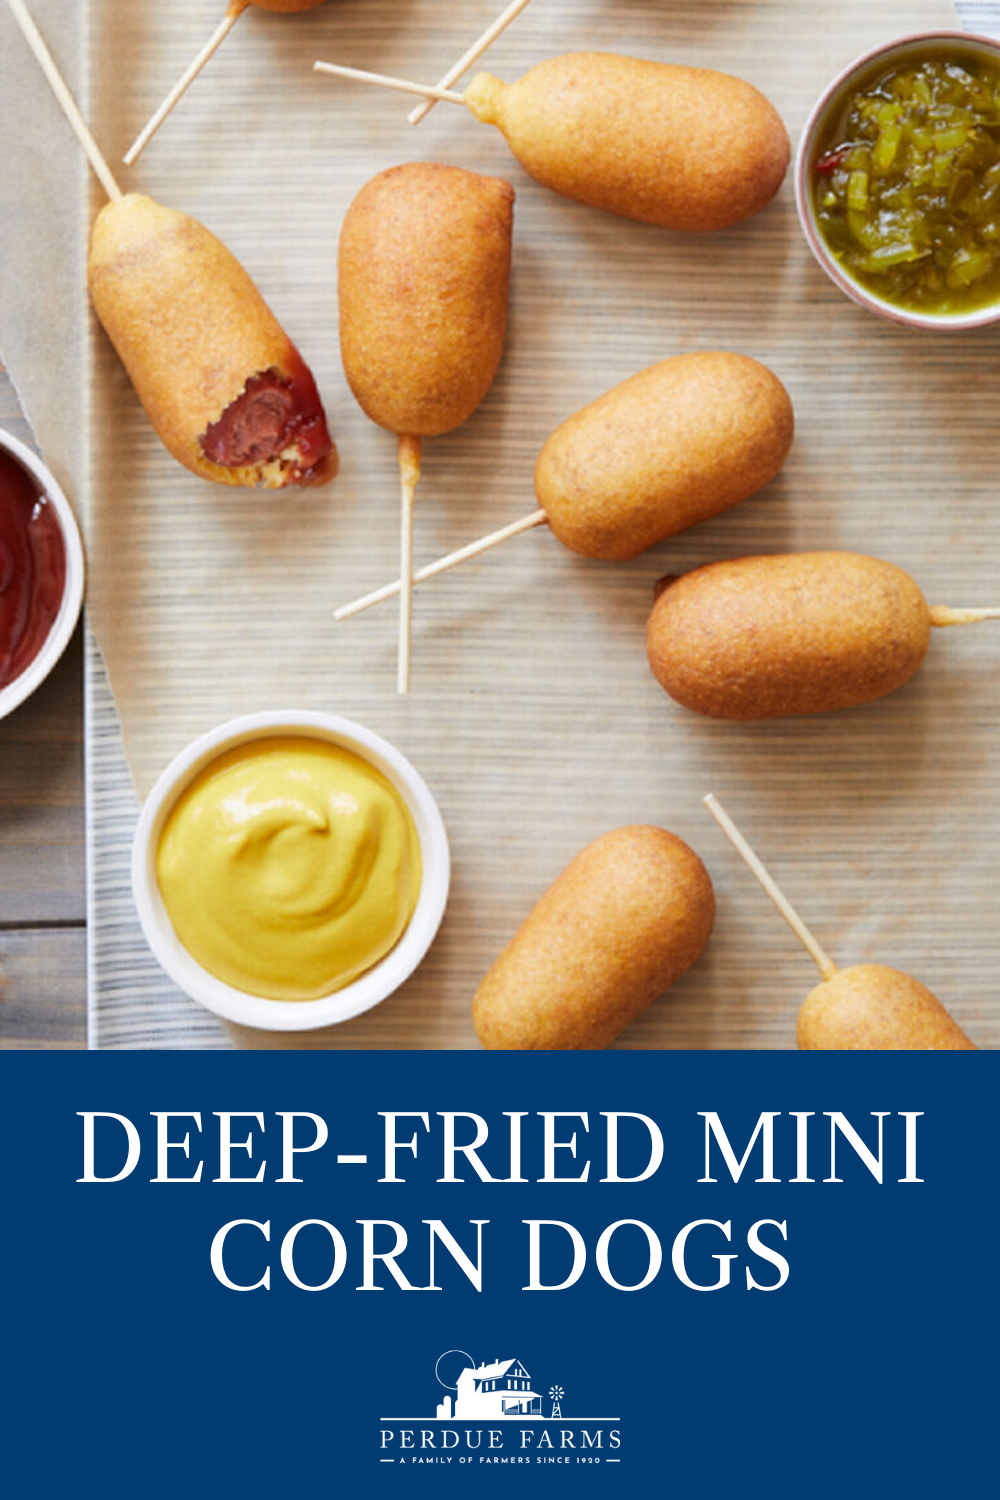 These deepfried mini corn dogs are an allAmerican